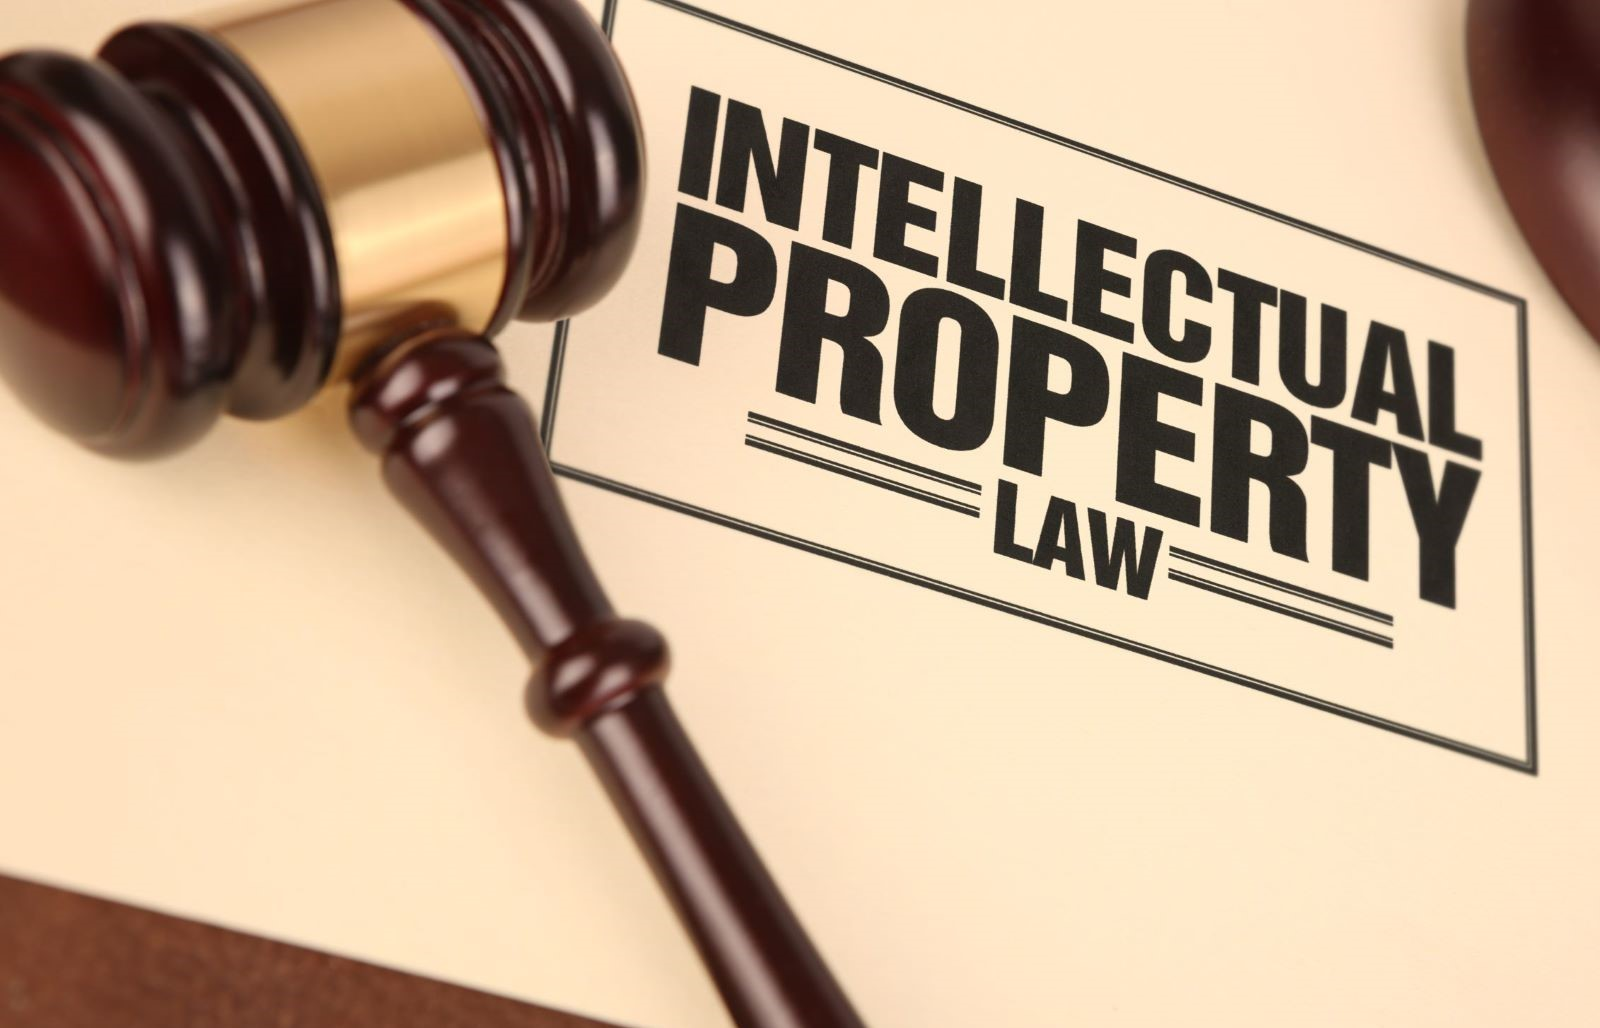 Intellectual Property Law Folder with Gavel